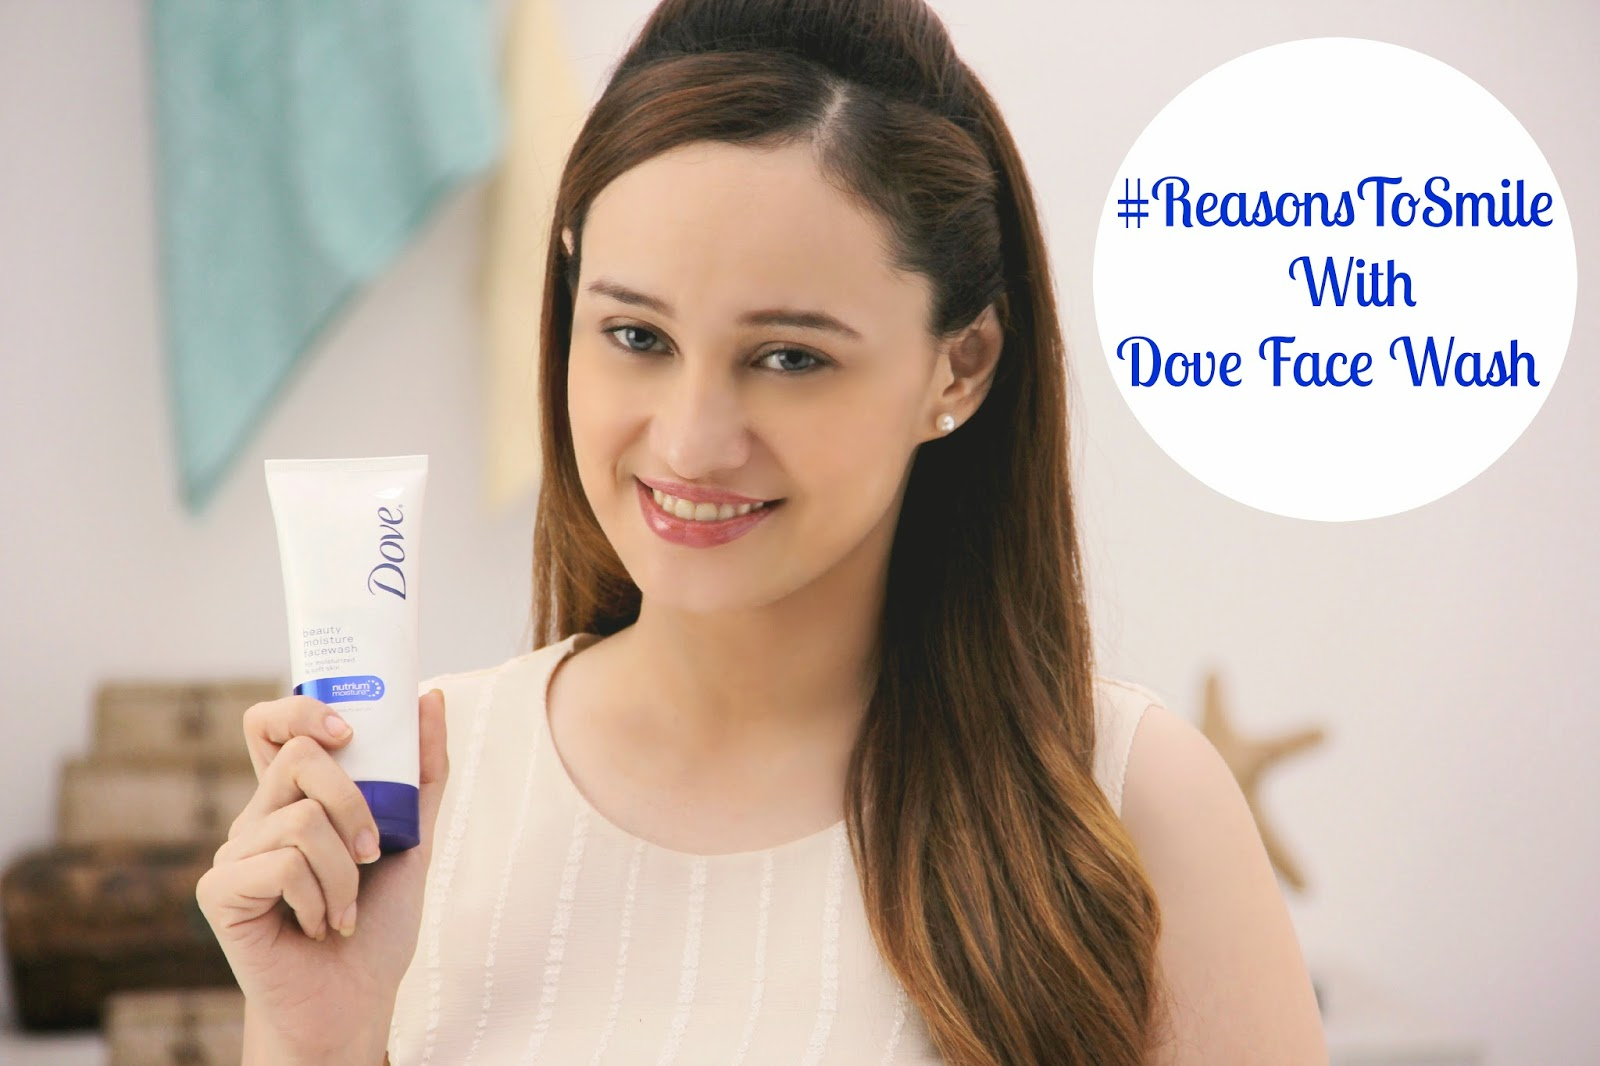 #reasonstosmile with Dove